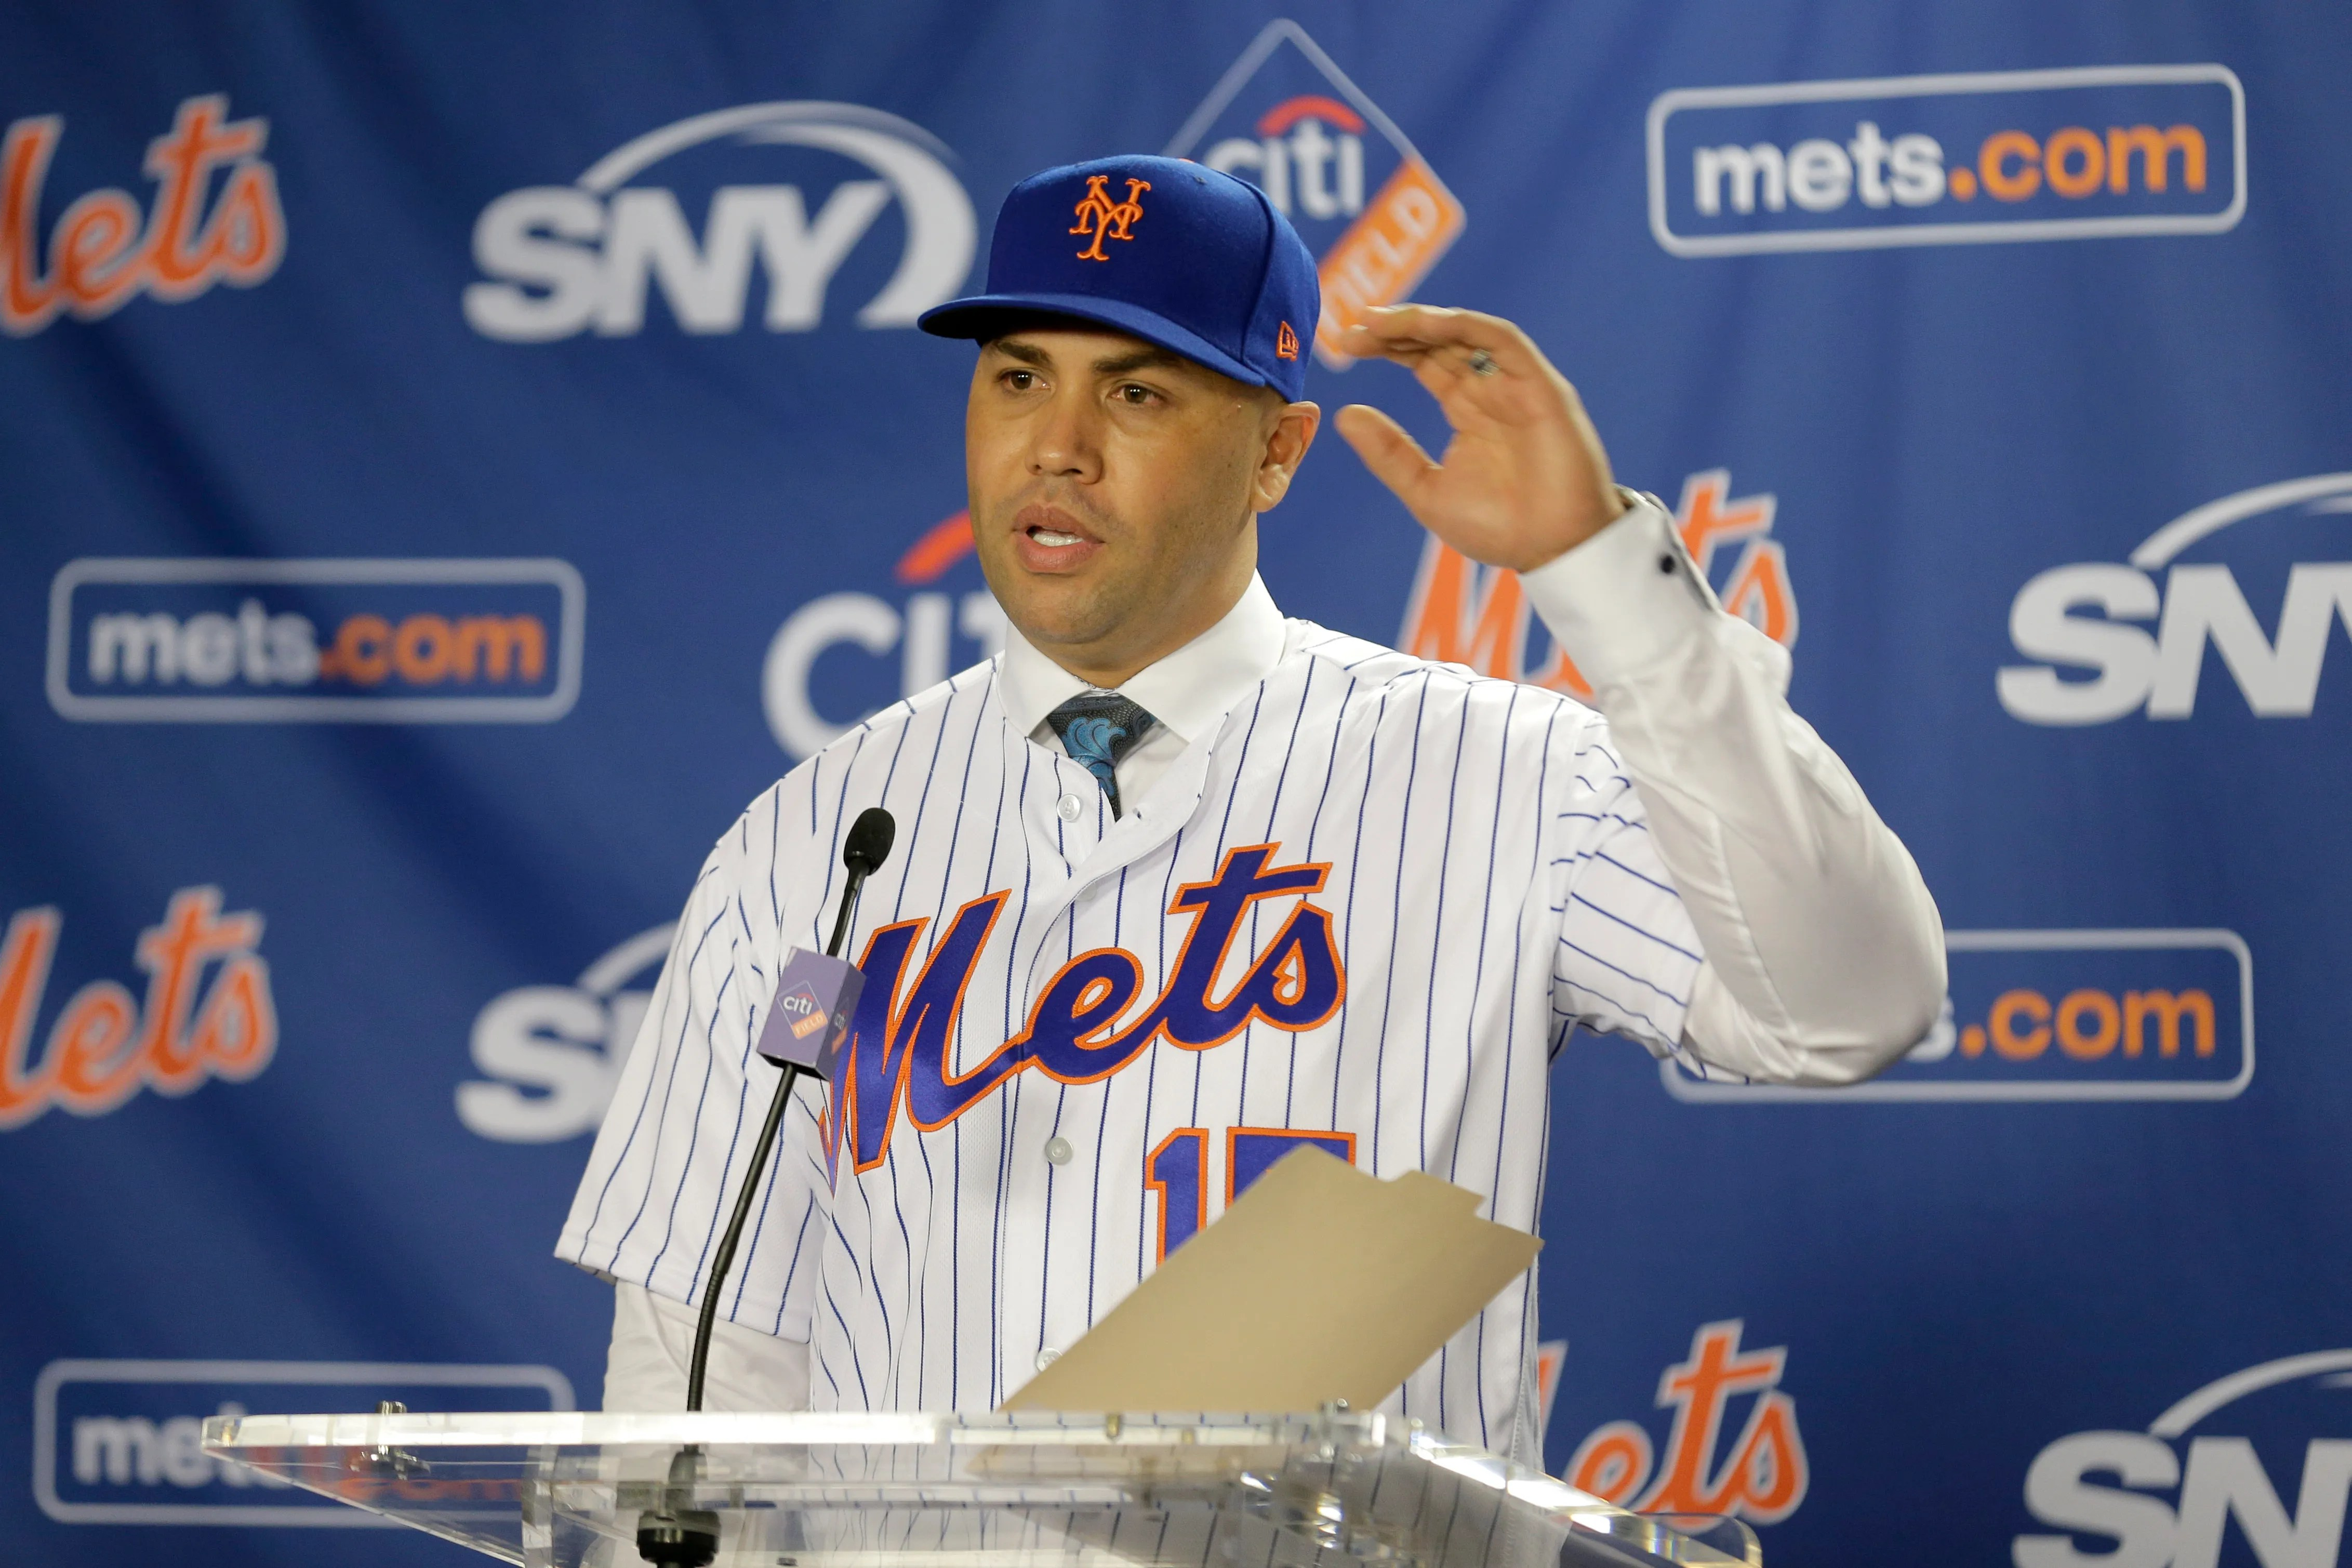 Mets Introduce Carlos Beltran As Team S New Manager